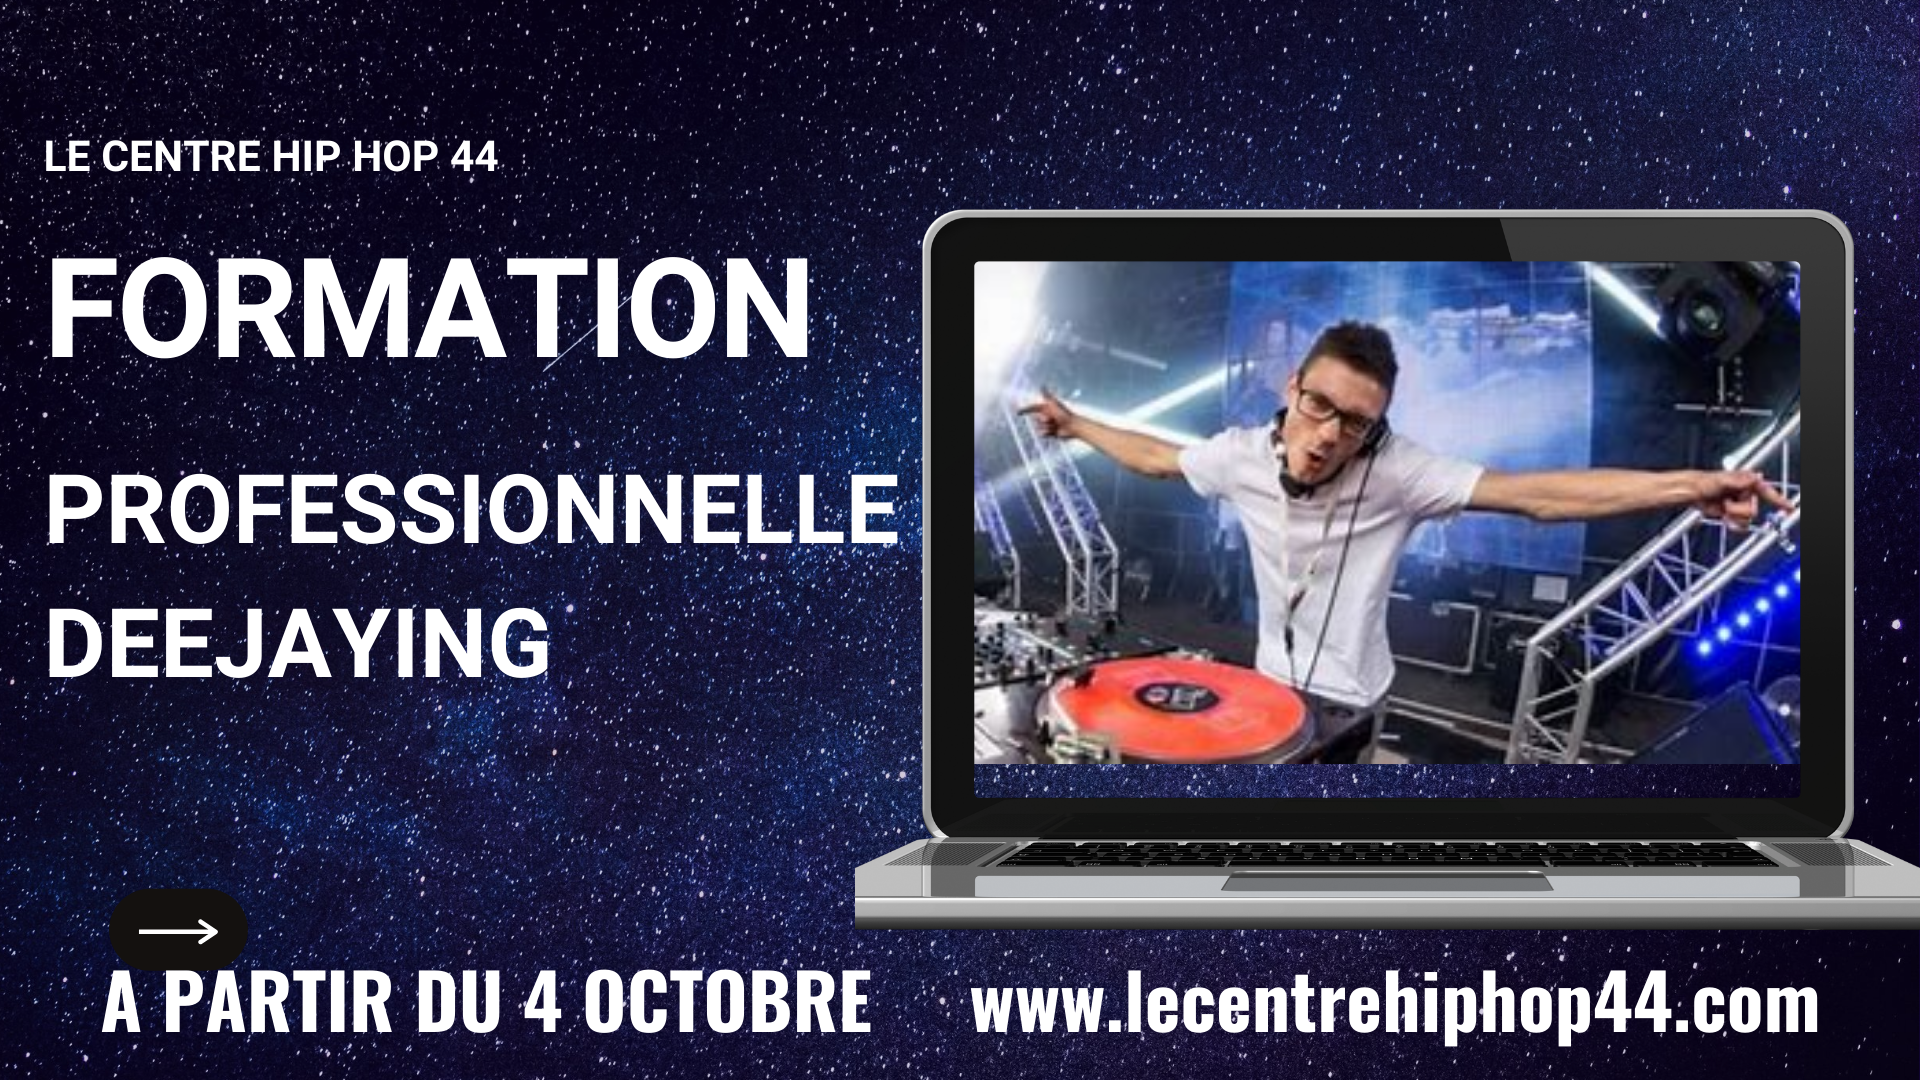 Formation pro deejaying